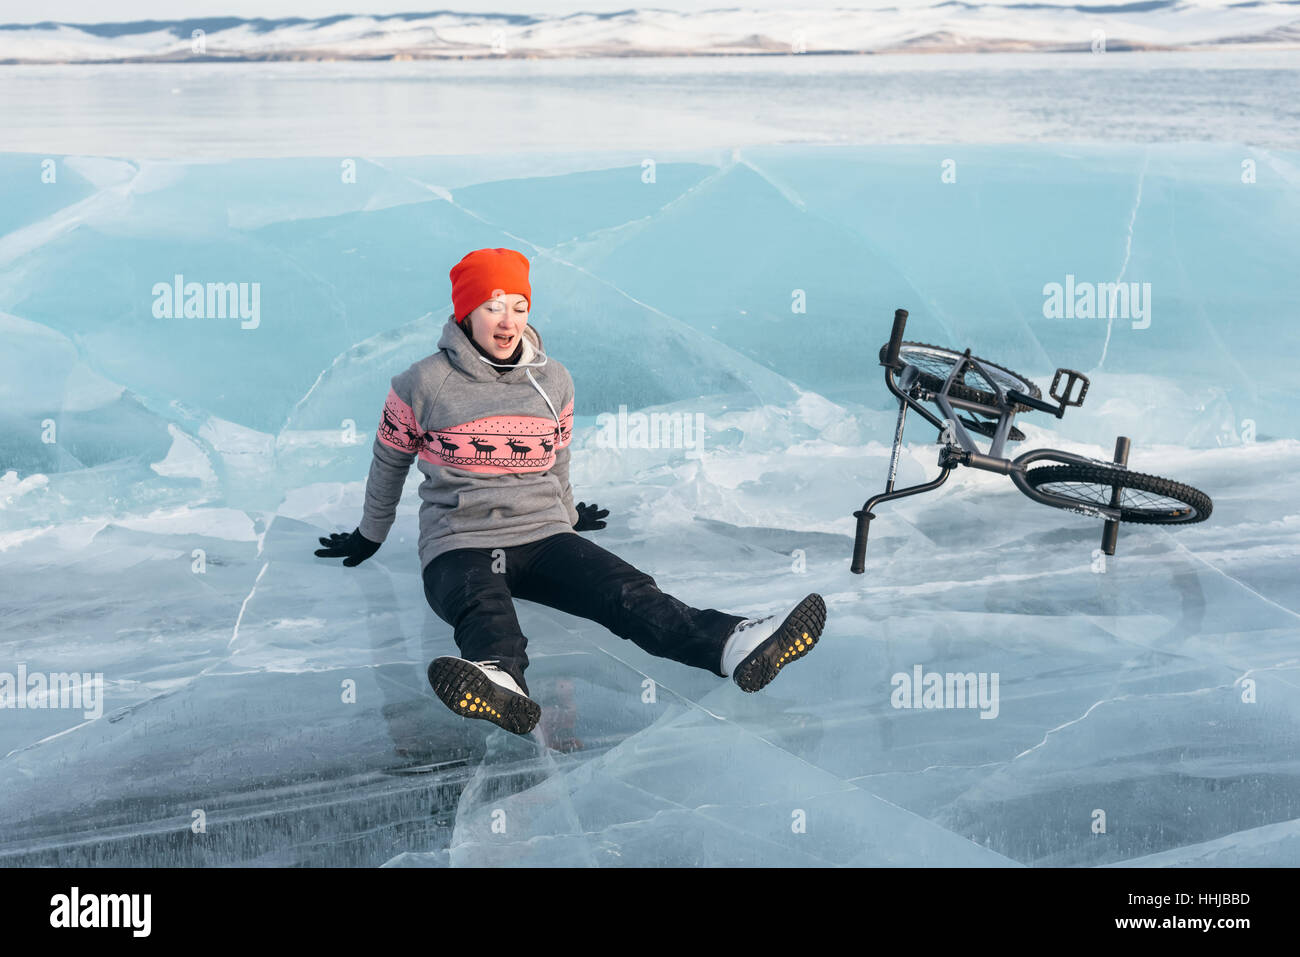 The girl fell from bmx on the beautiful and dangerous ice and rolled down. - Stock Image